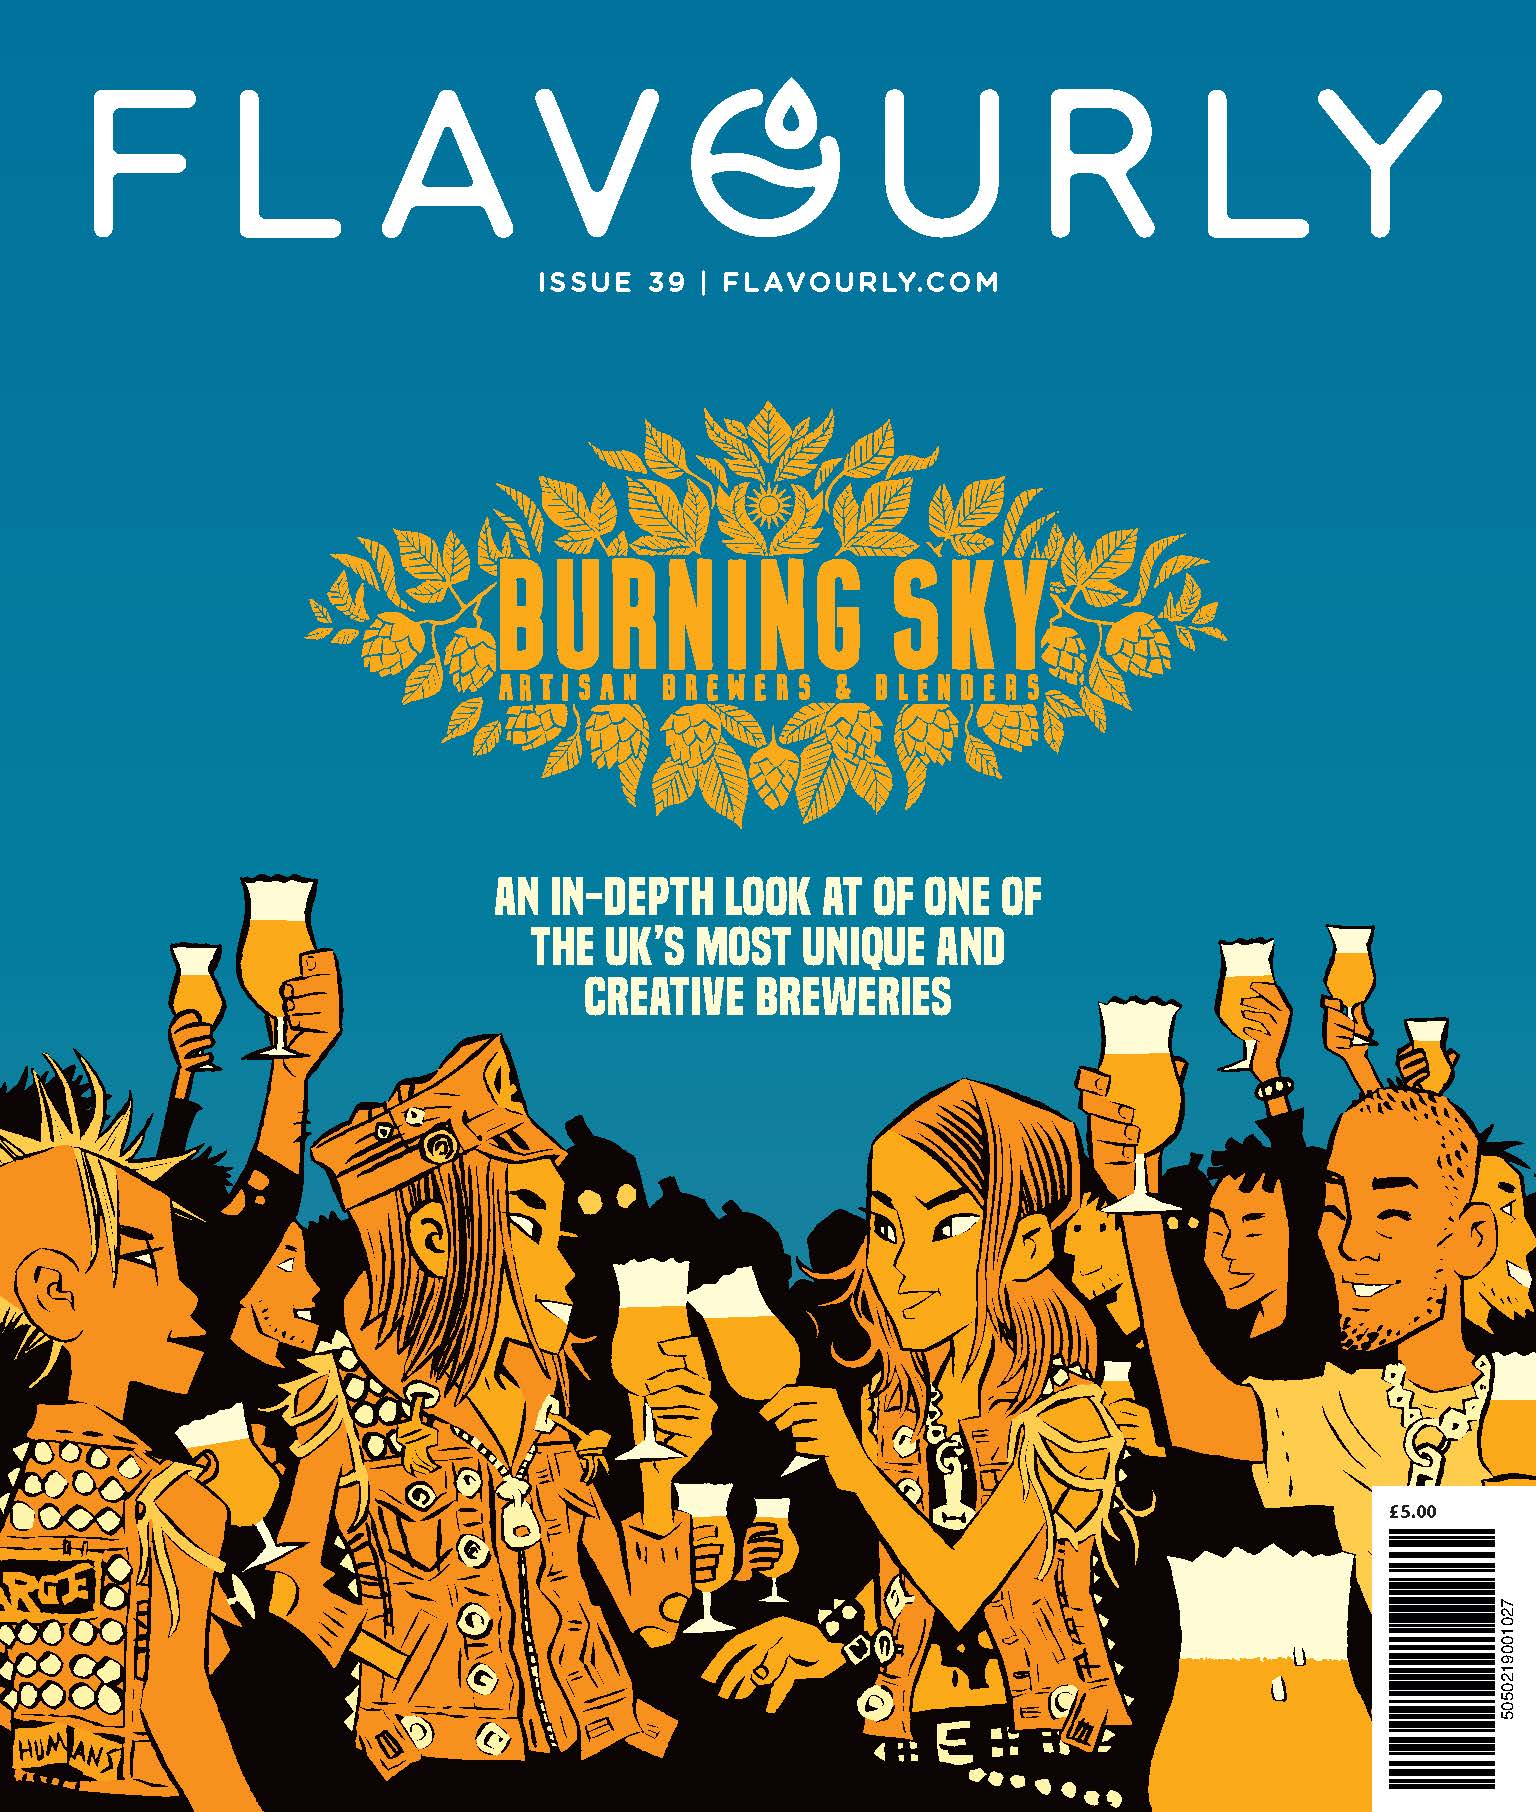 ISSUE 39 by Flavourly Magazine